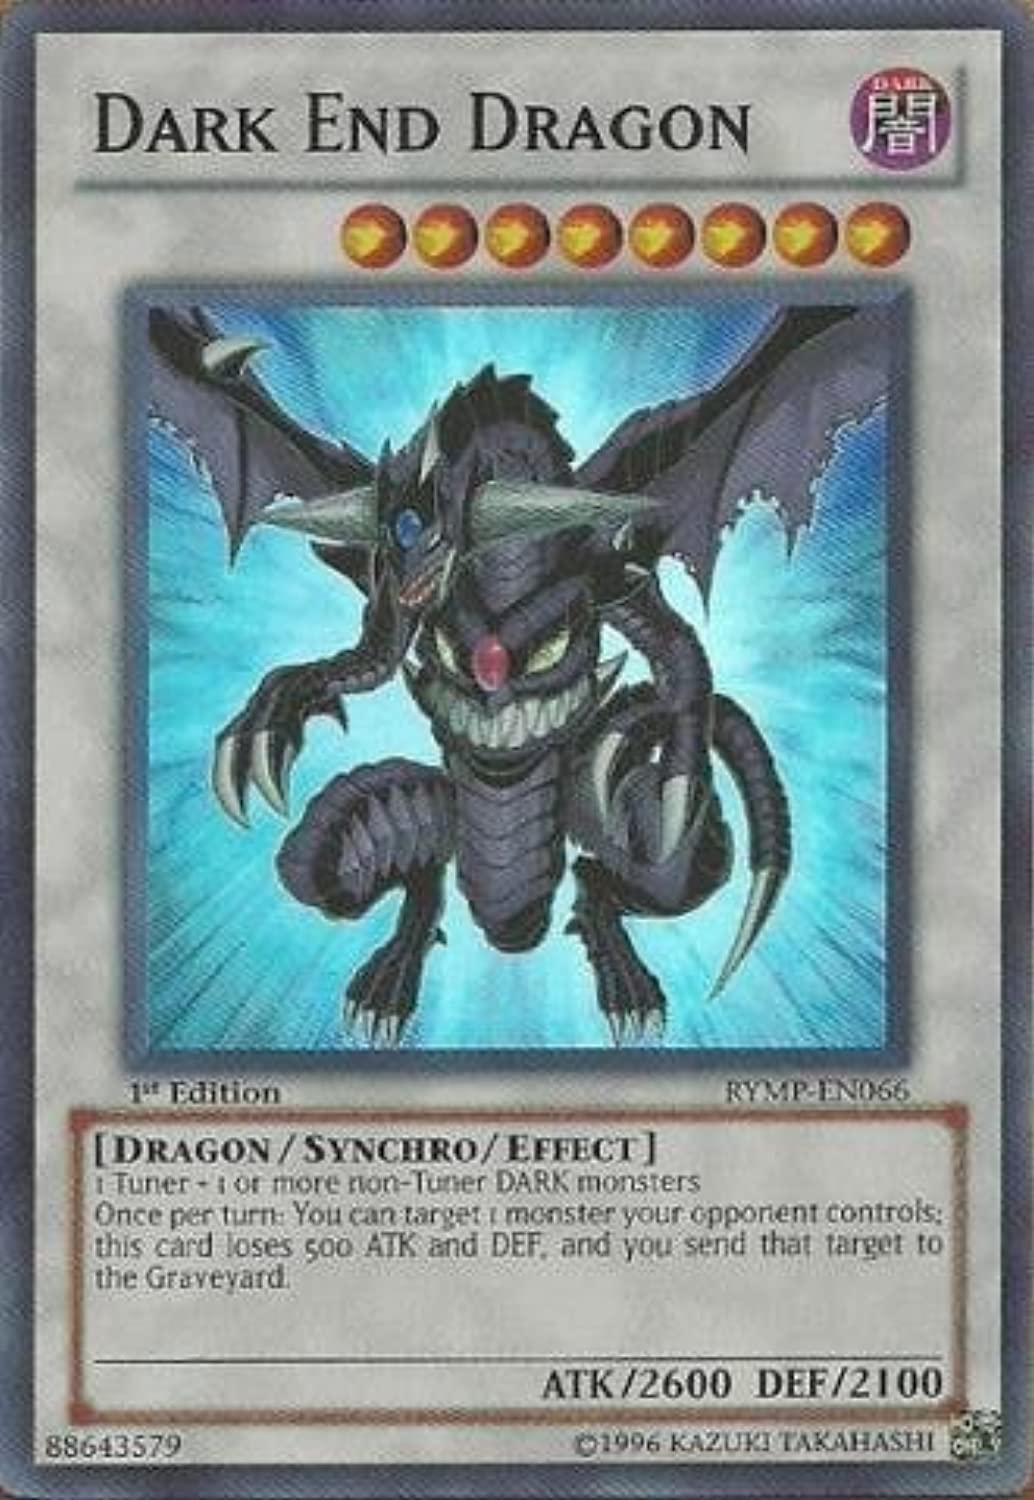 YuGiOh   Dark End Dragon (RYMPEN066)  Ra Yellow MegaPack  1st Edition  Super Rare by YuGiOh